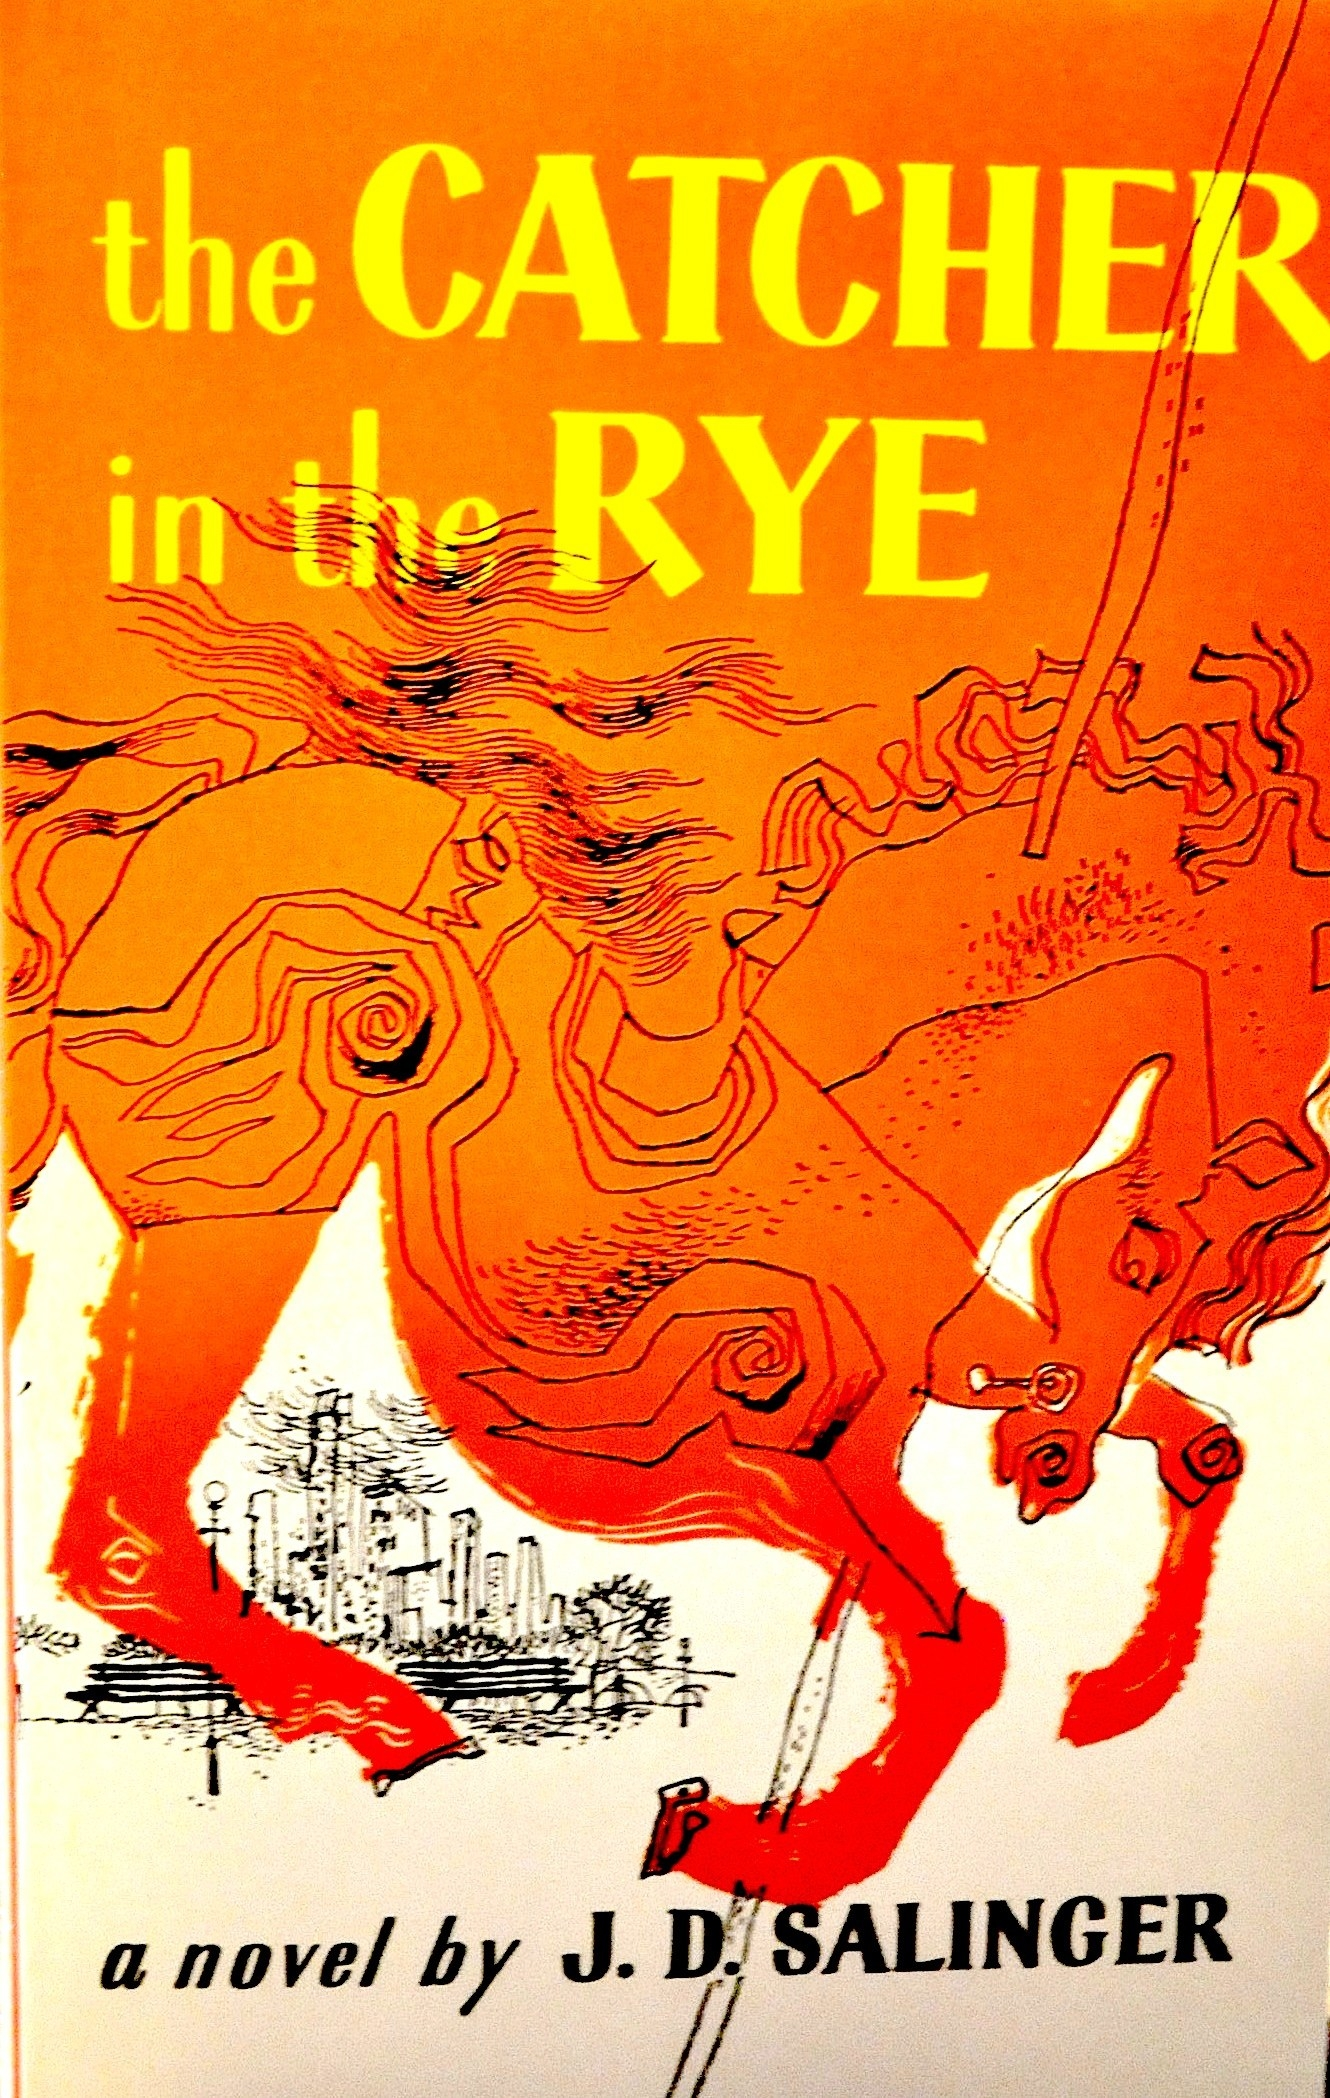 catcher of the rye Summary of the novel jd salinger's the catcher in the rye opens with a glimpse into the neurotic world of holden caufield, an adolescent from the new york region, who is finishing his term at a rural pennsylvania boarding school.